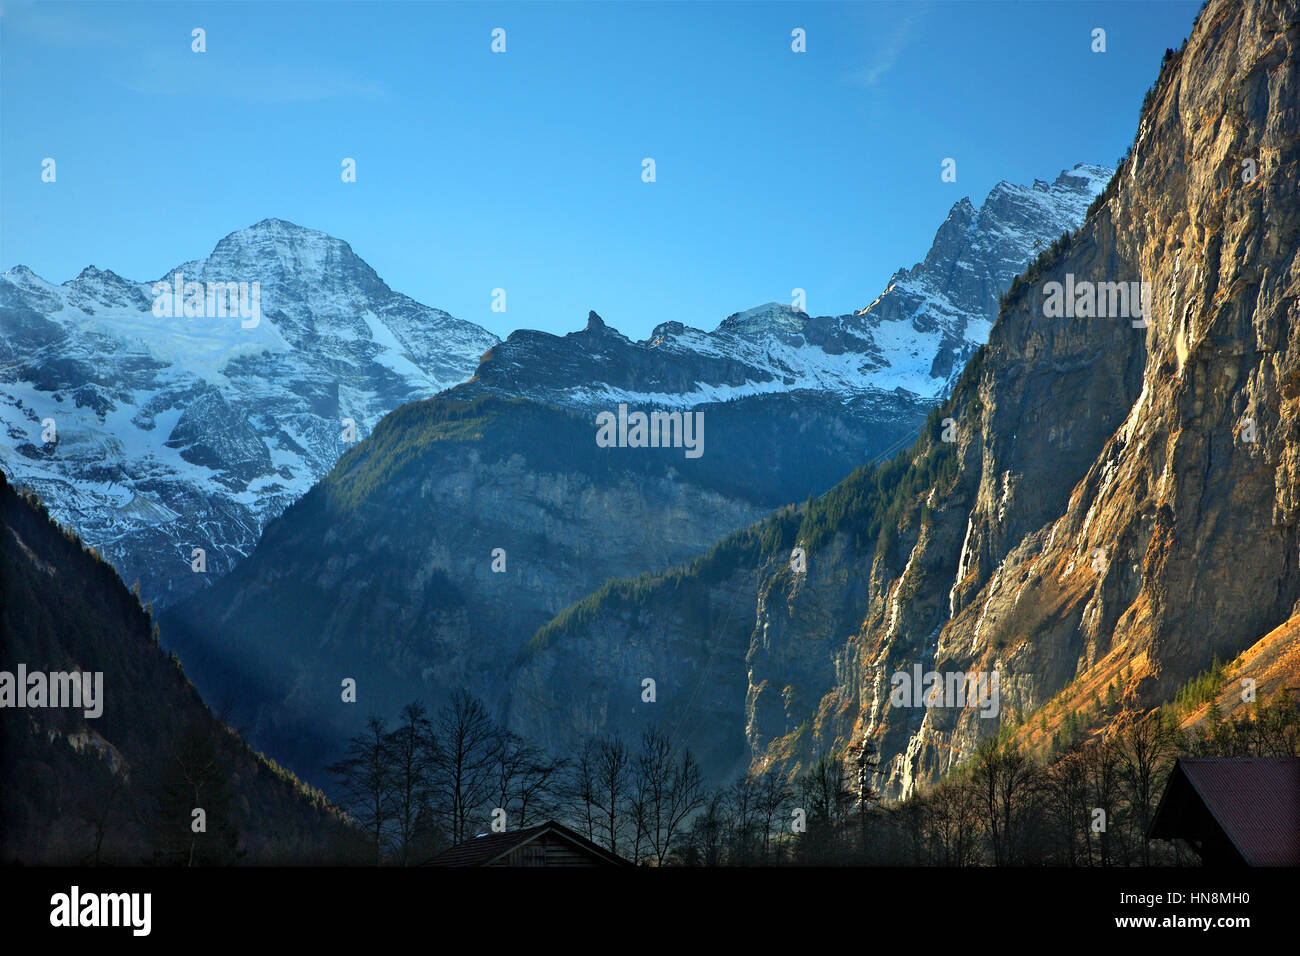 Lauterbrunnen valley and in the background the Swiss Alps. Bernese Oberland, Switzerland - Stock Image